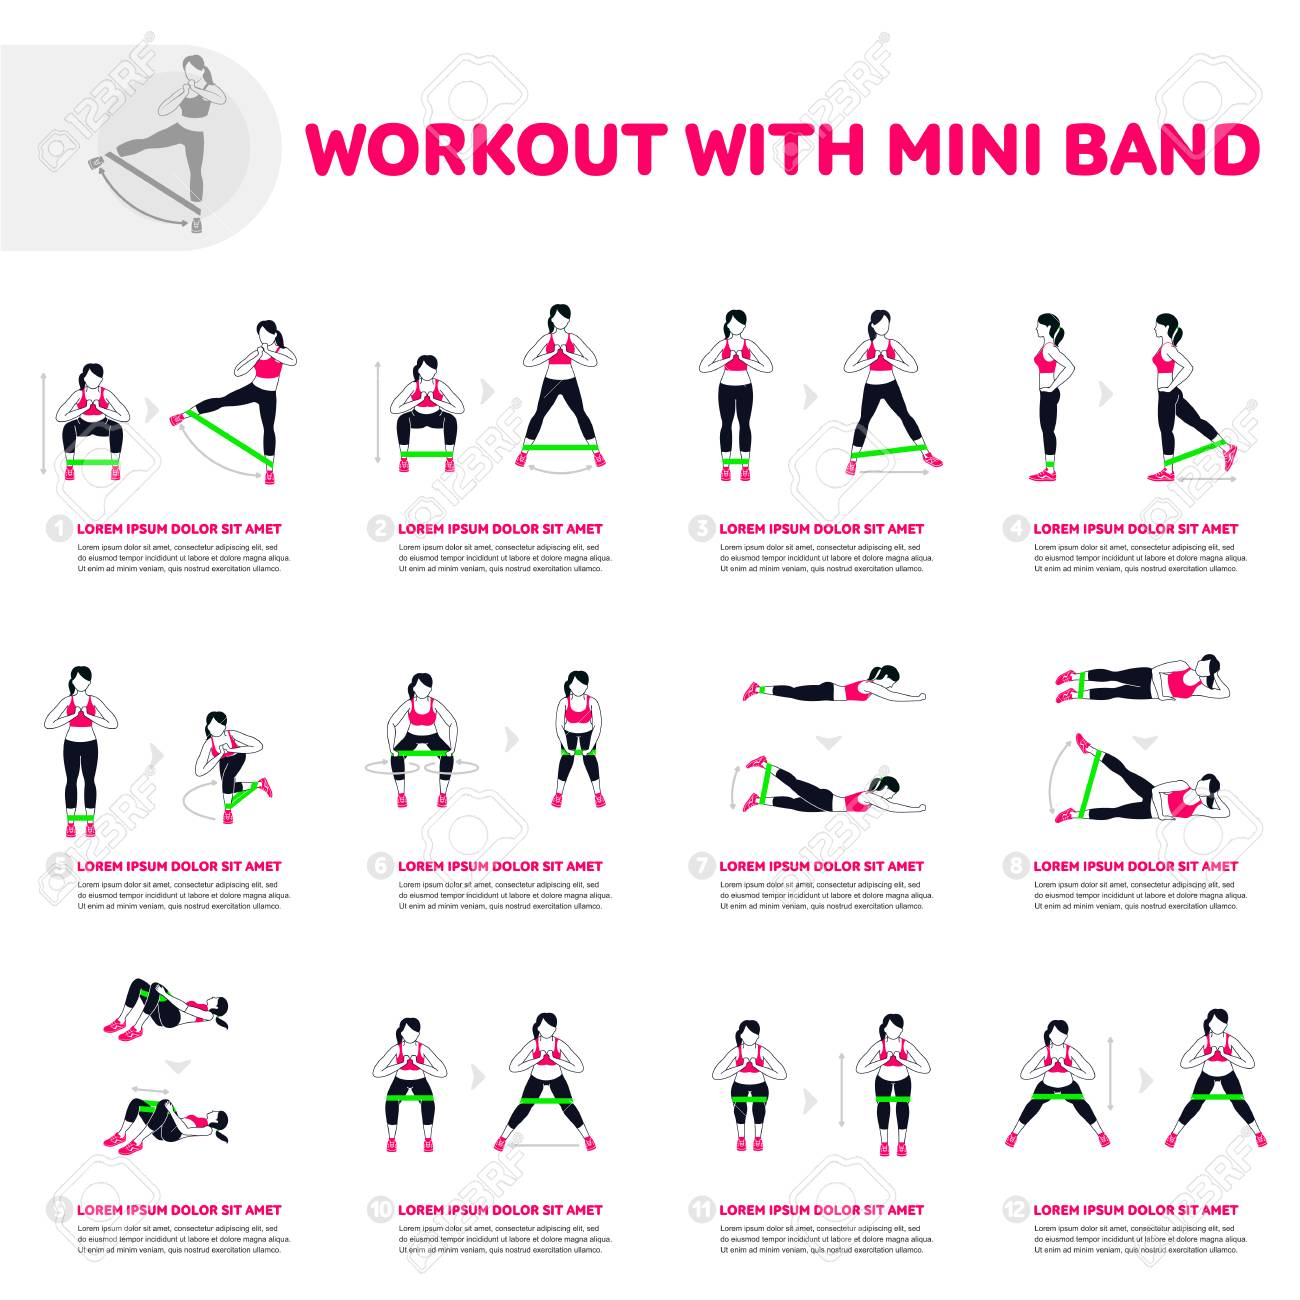 Workout with mini band. Fitness, Aerobic and workout exercise in gym. Vector set of gym icons in flat style isolated on white background. People in gym. Gym equipment. - 88965457